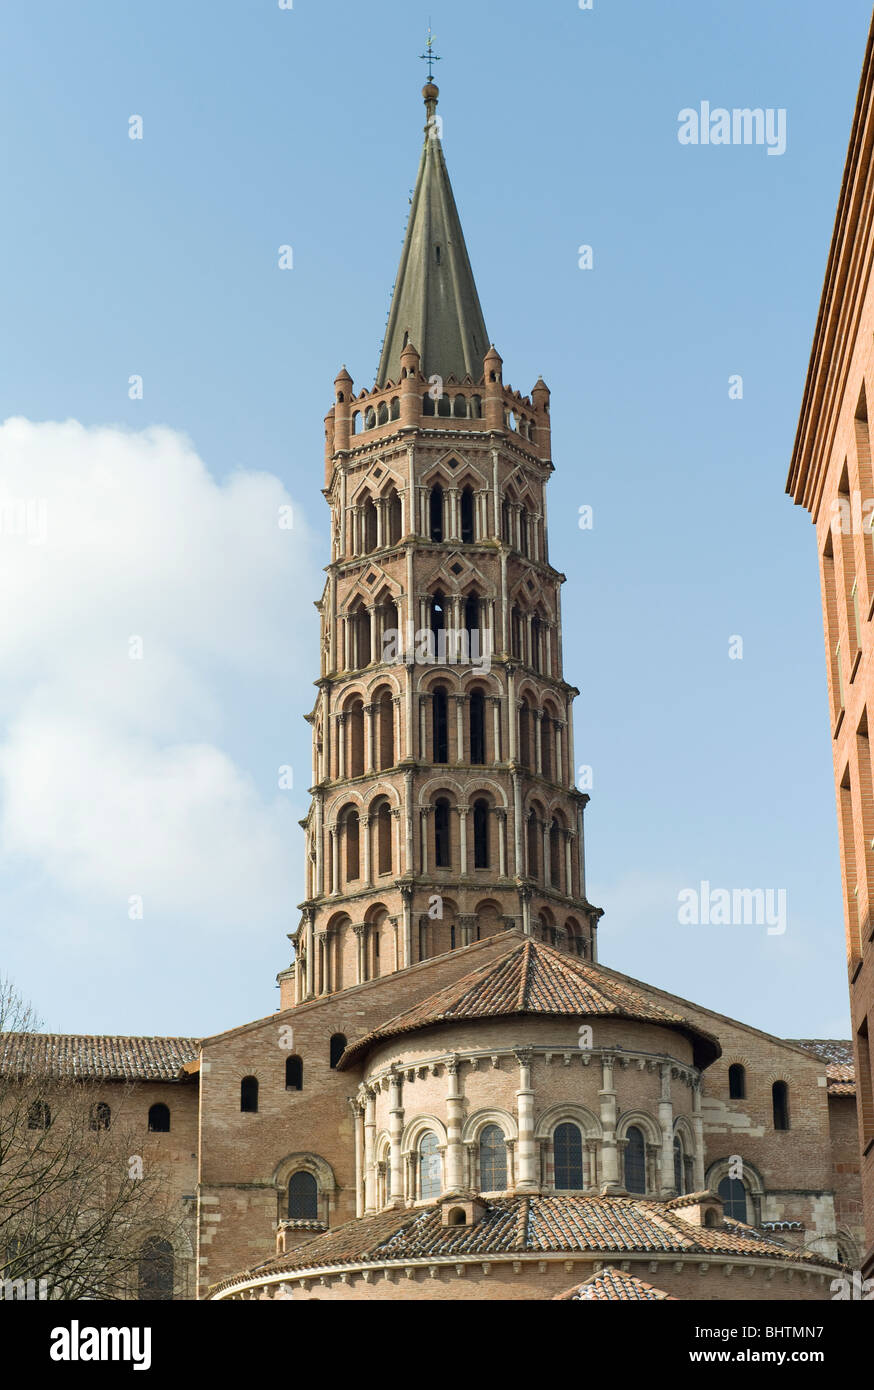 The tower of the cathedral of St Sernin, Toulouse, Haute Garonne,  Occitanie, France - Stock Image